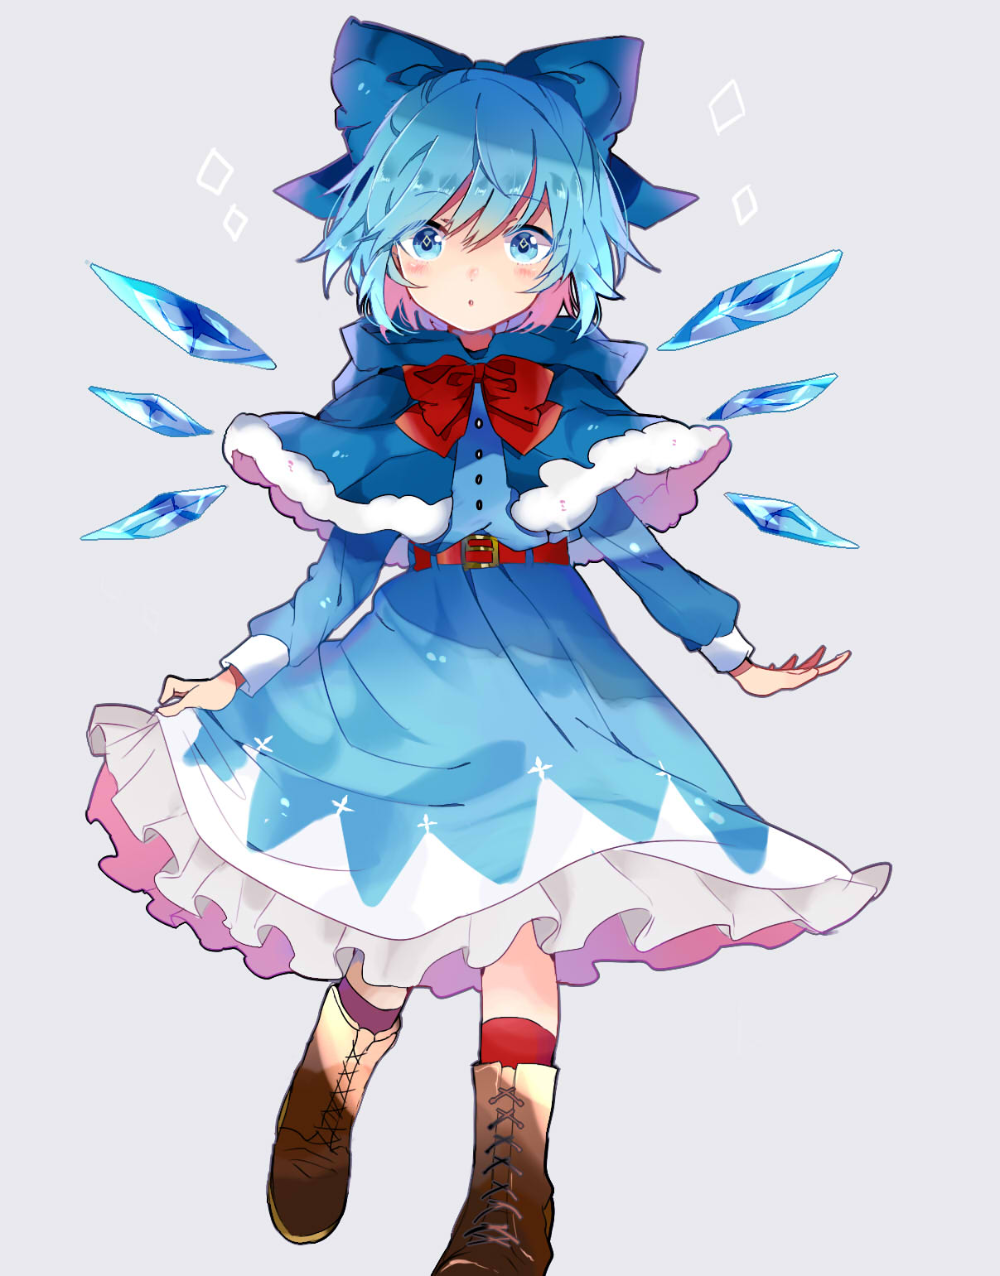 touhou project touhou chirno pixiv 東方 かわいい イラスト キャラクターデザイン